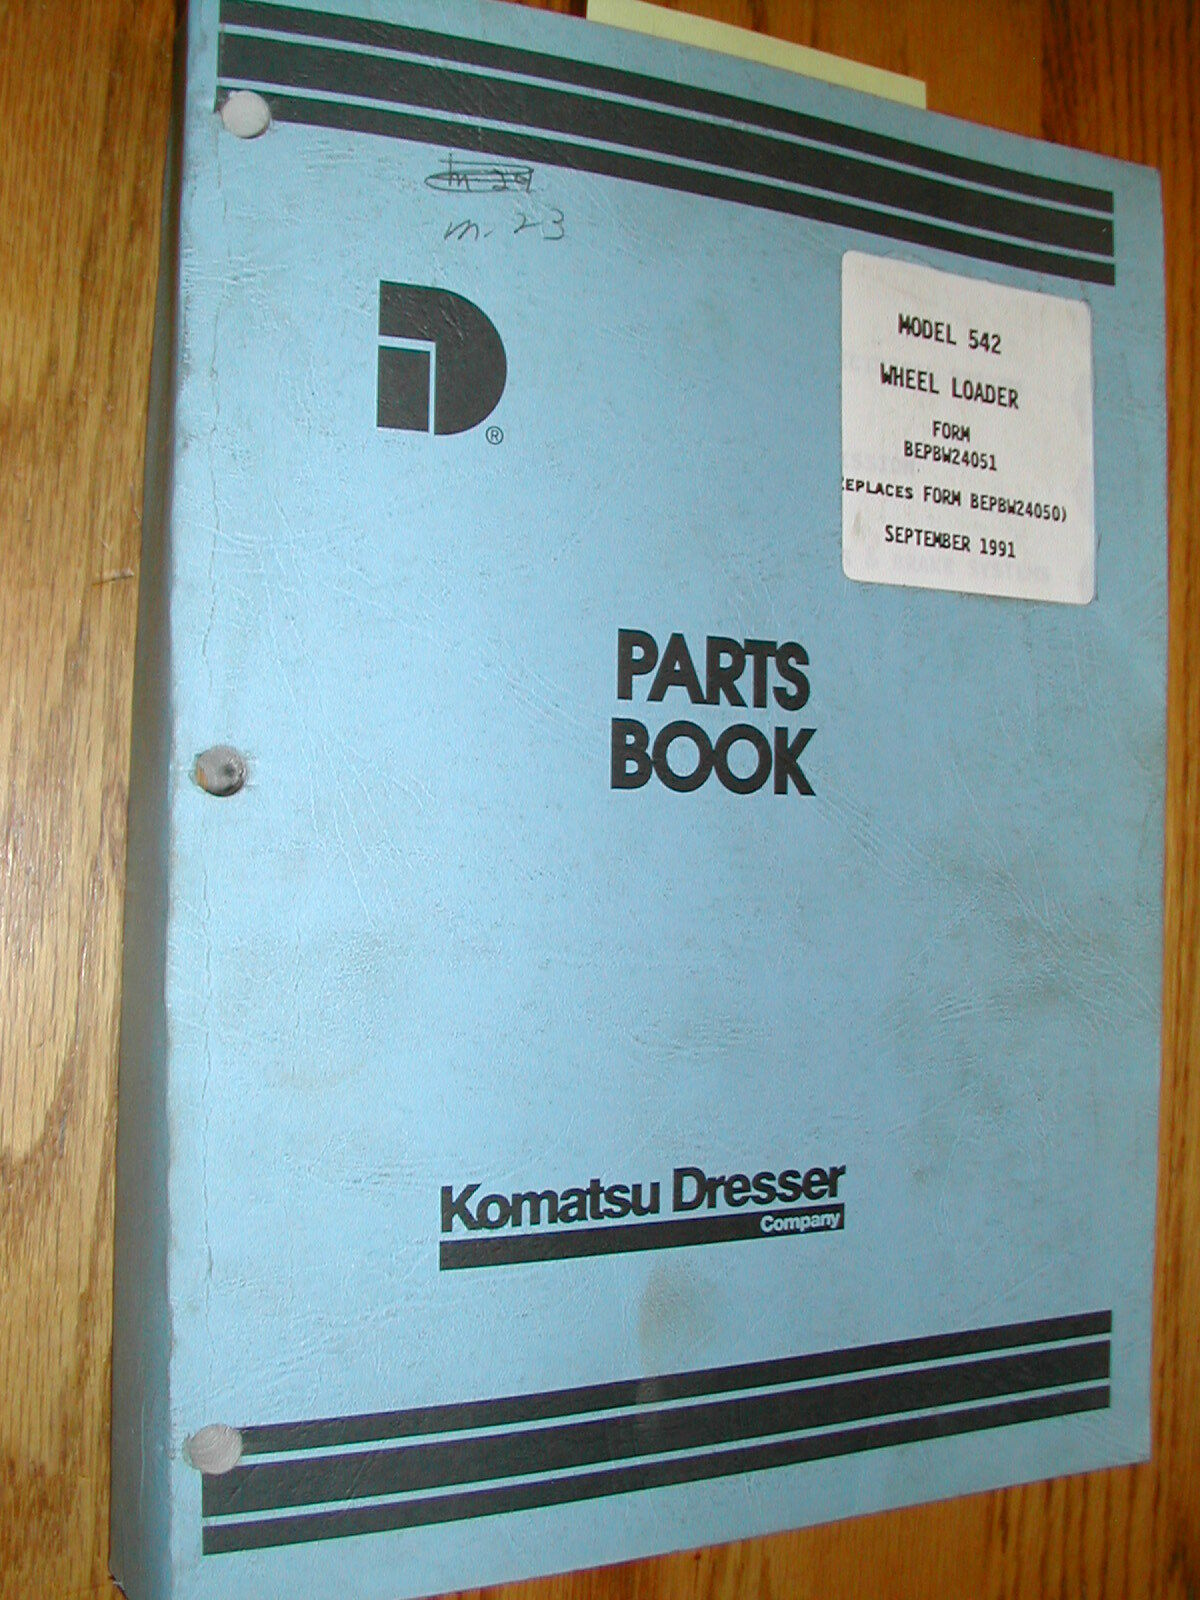 Komatsu Dresser 542 PARTS MANUAL BOOK CATALOG WHEEL LOADER GUIDE LIST  BEPBW24051 1 of 1Only 2 available ...